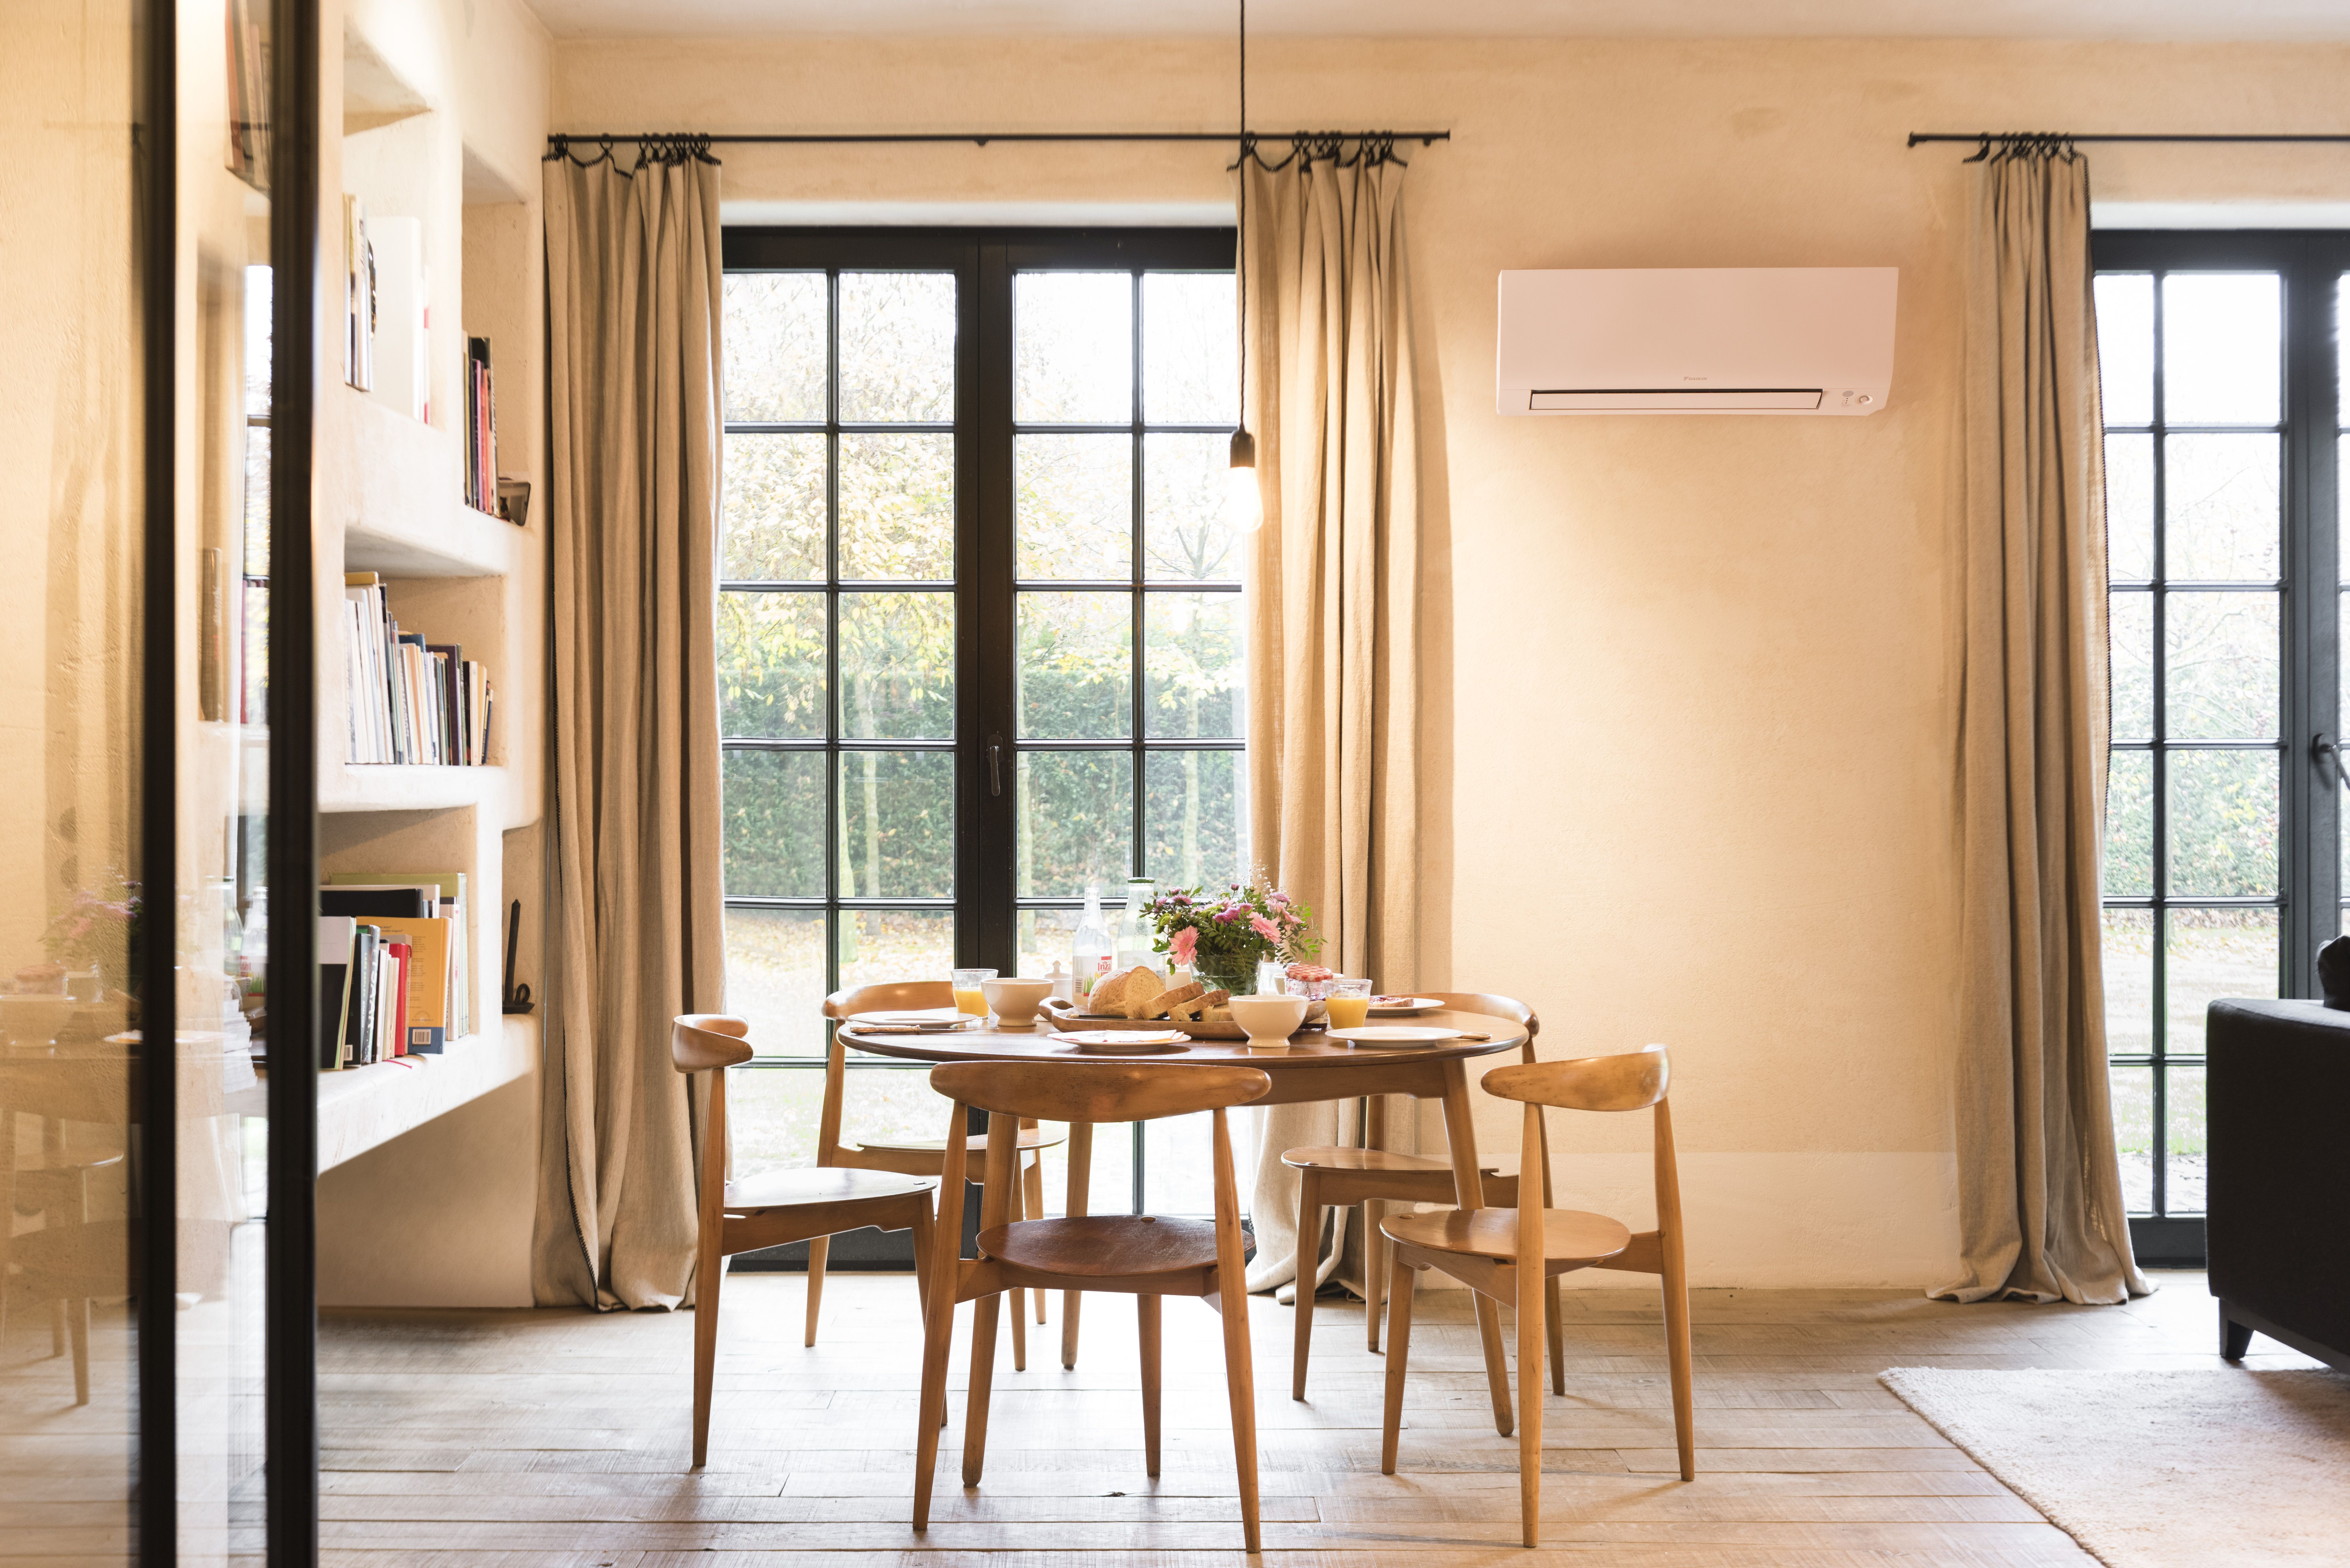 The Prefera wall mounted unit is a smart, safe and